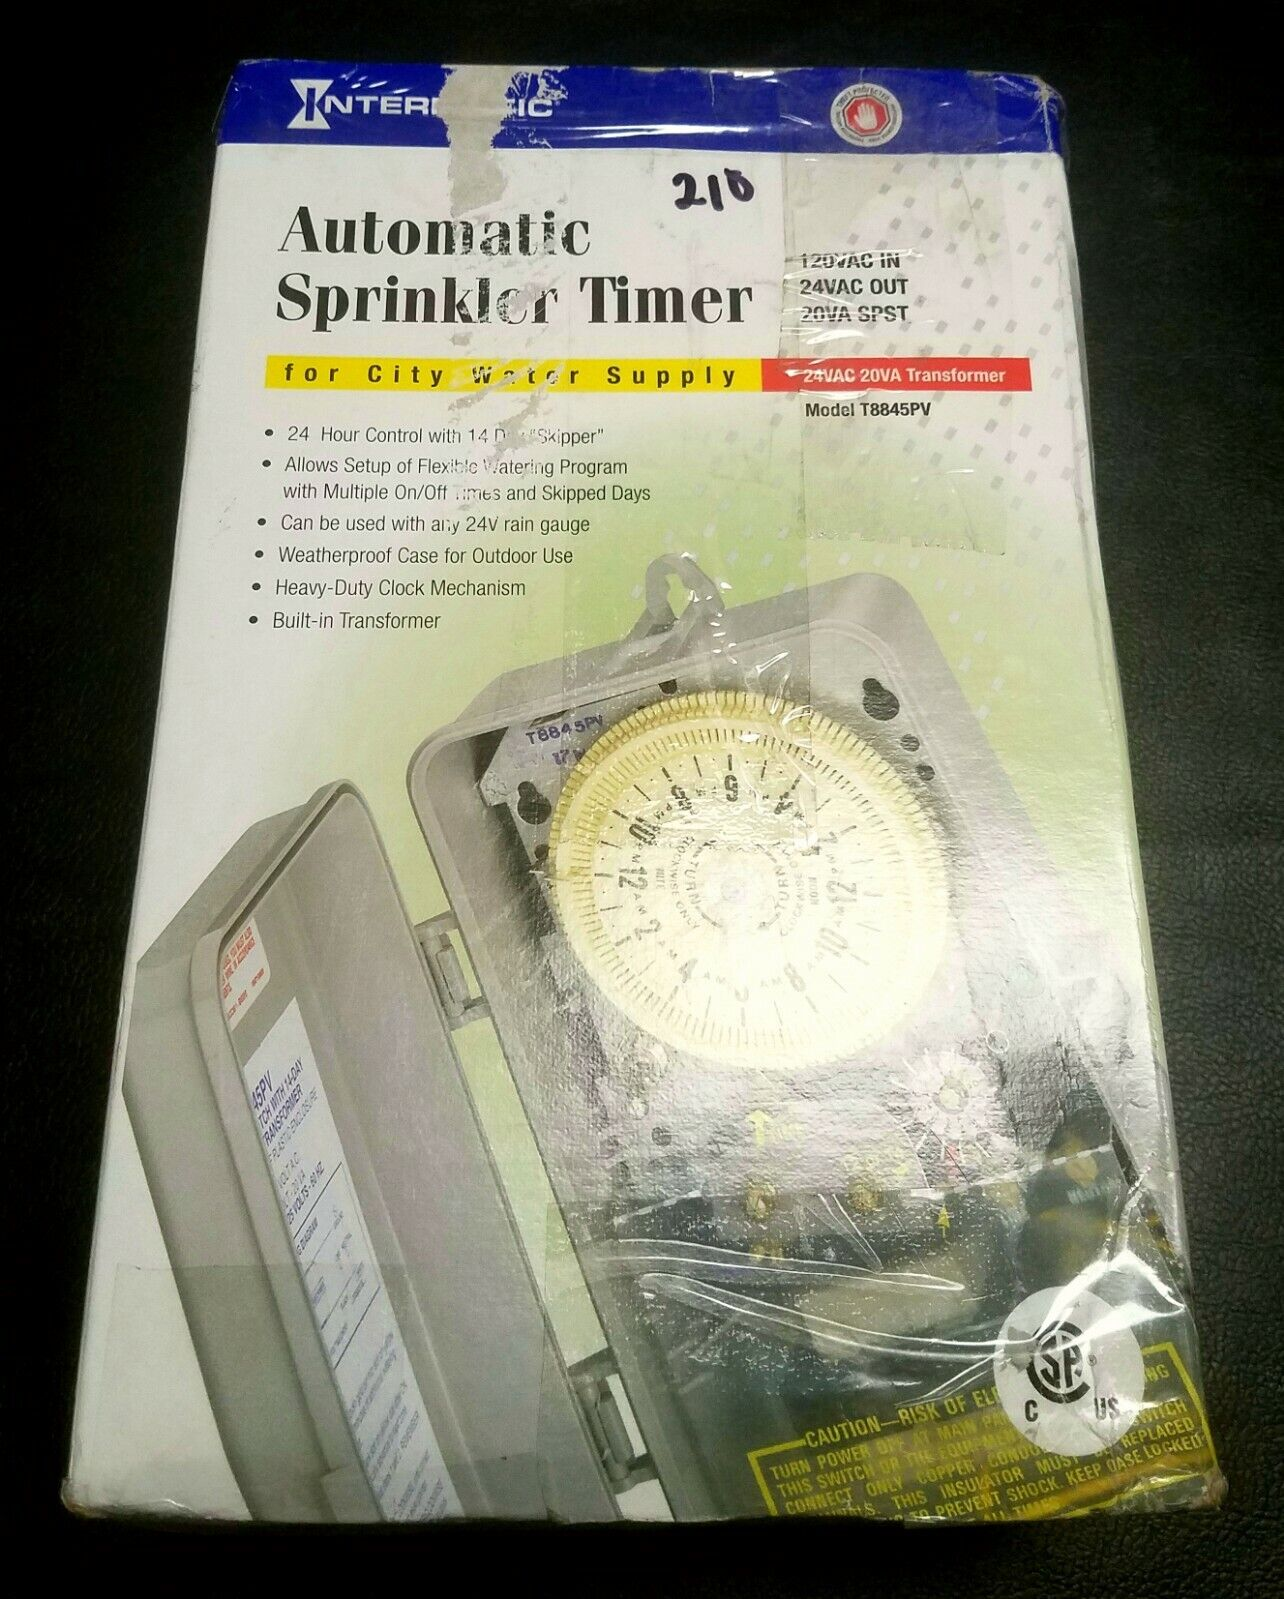 Intermatic Automatic Mechanical Sprinkler Timer For City Water Supply - #T8845PV